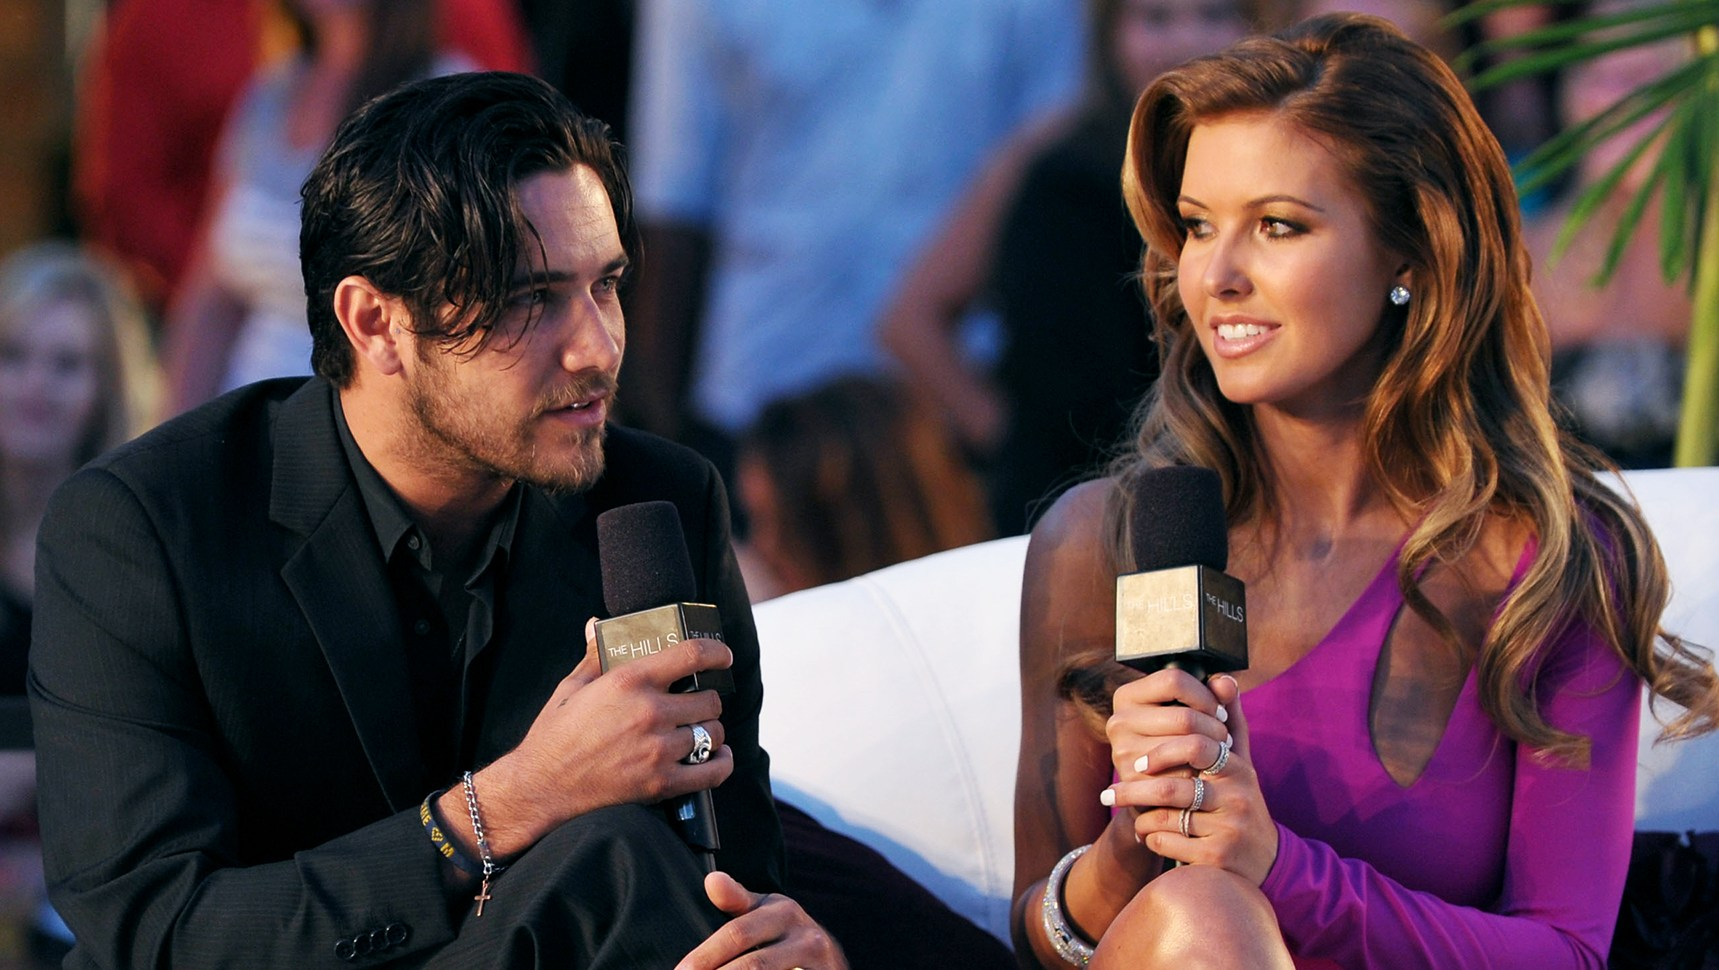 Inside 'The Hills' Revival: Audrina Patridge and Justin Bobby Brescia Have Started Filming Together